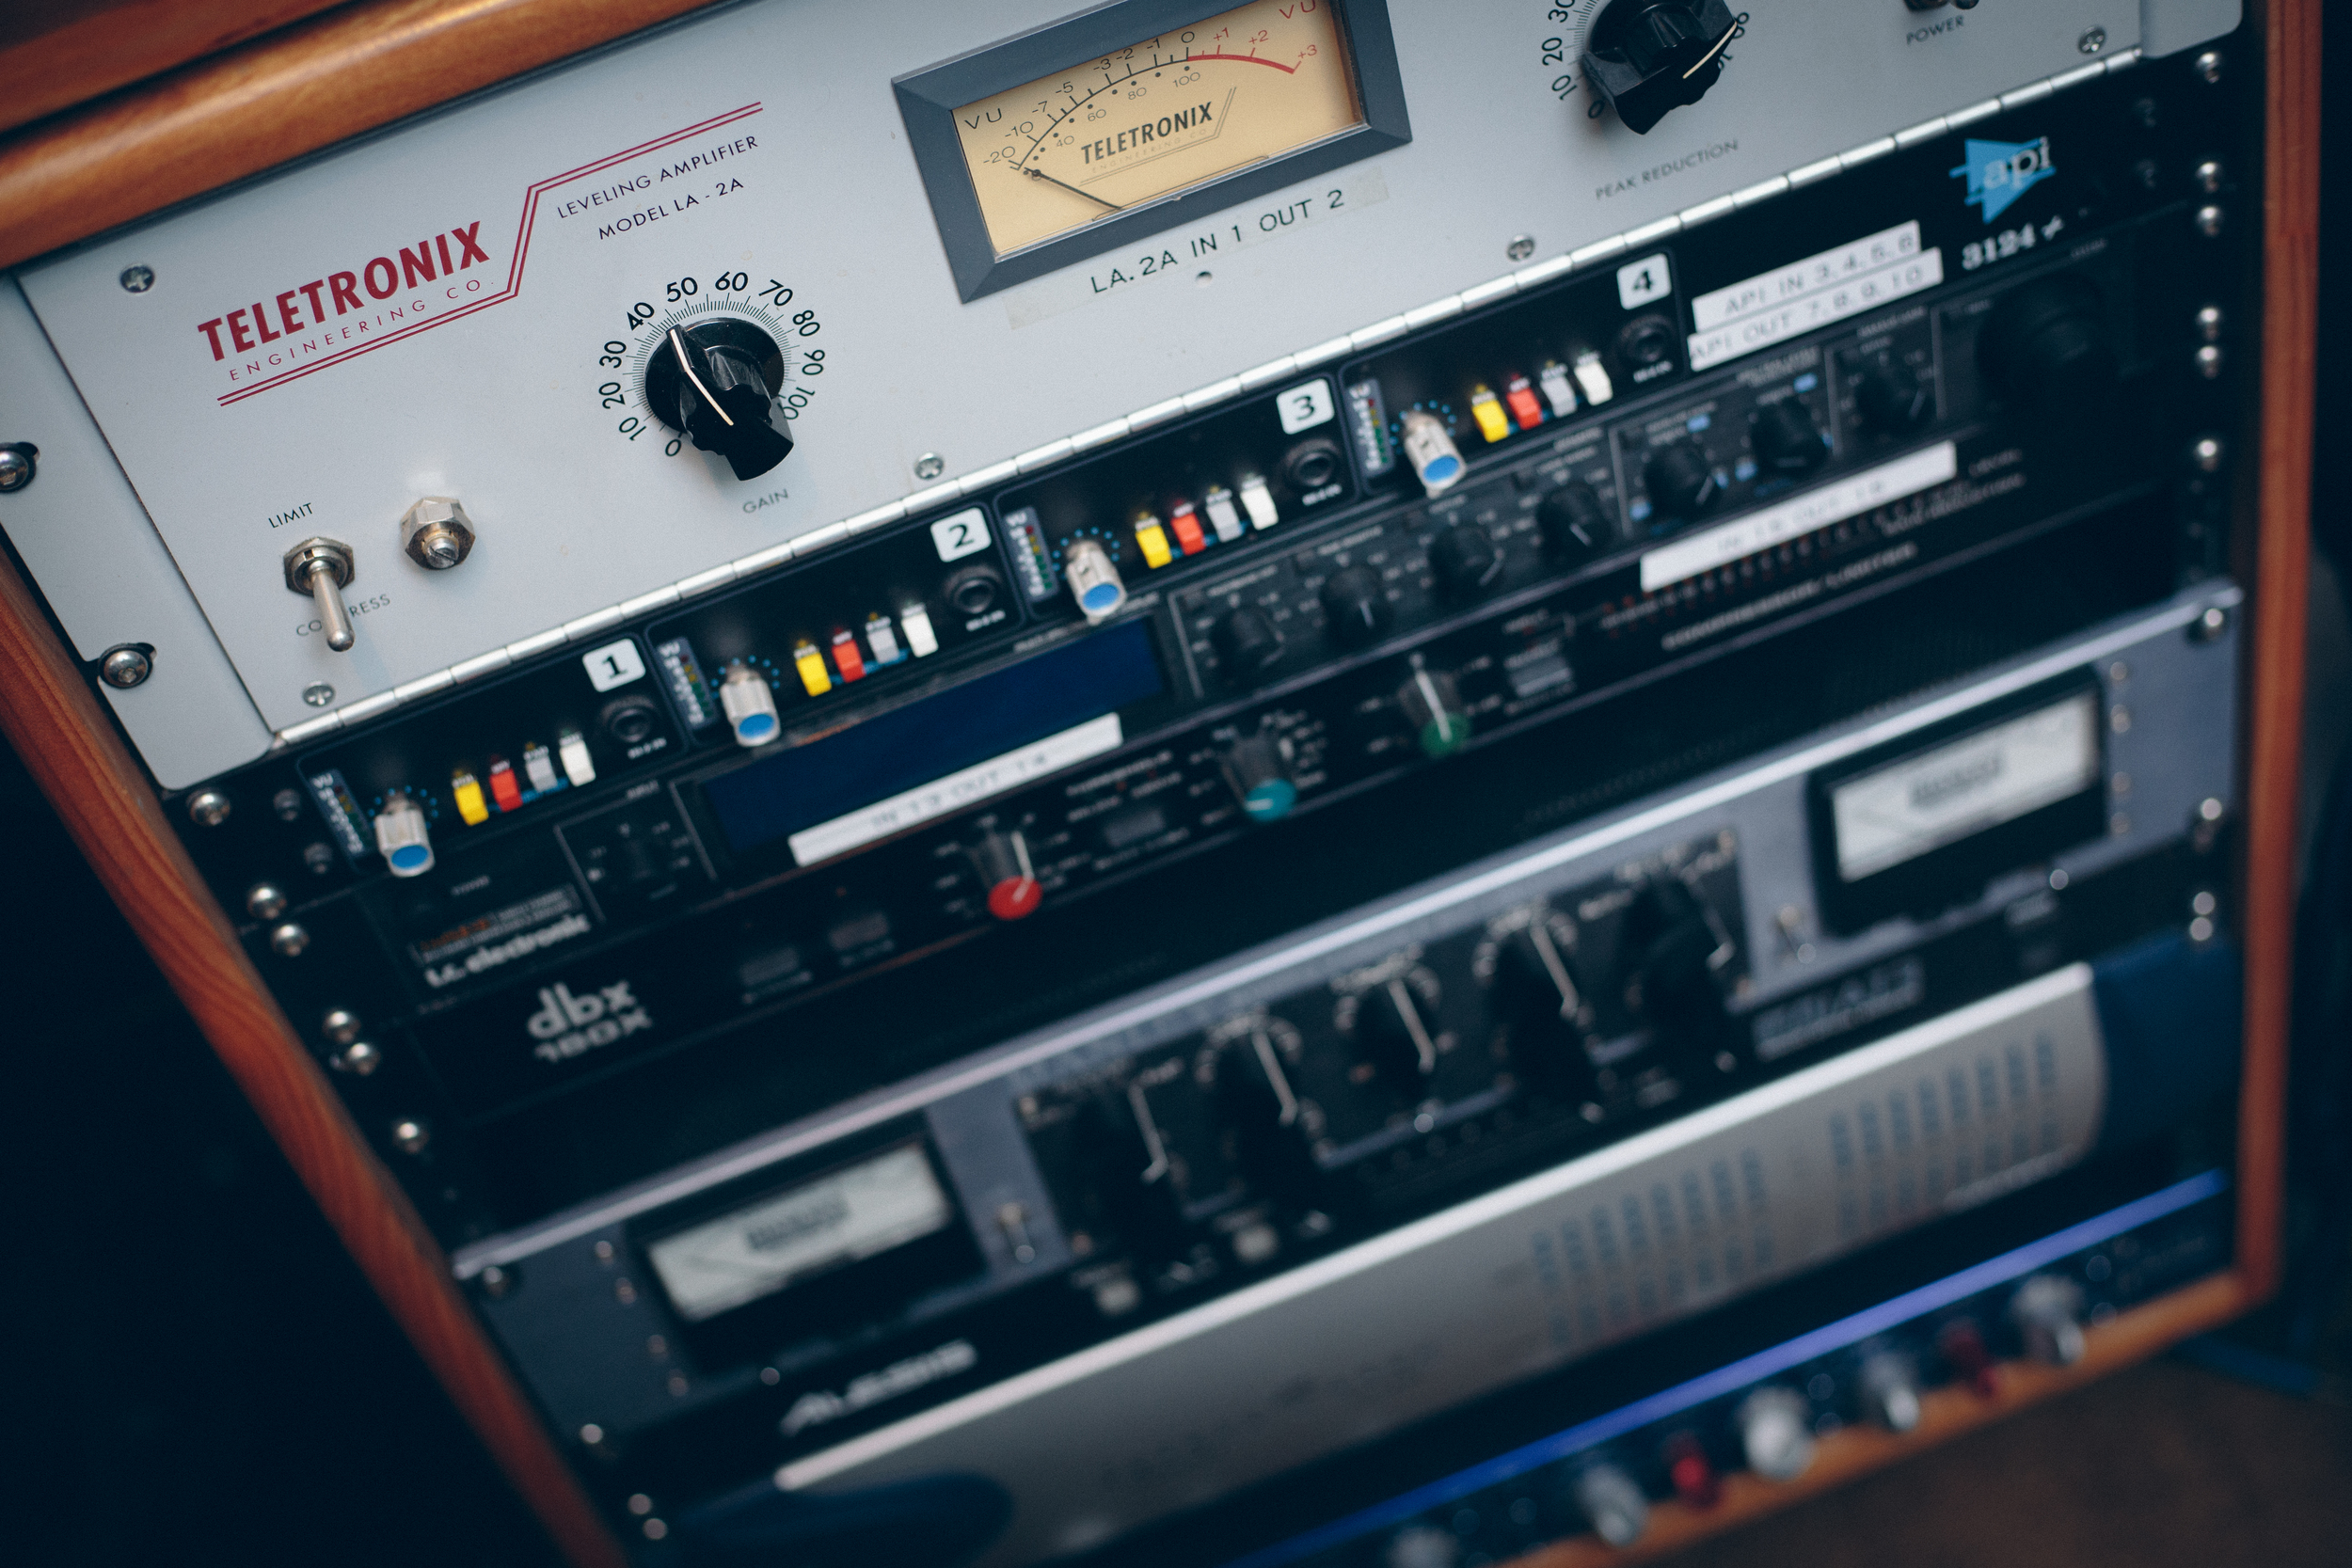 Universal Audio and Manley Compressors, Manley Equalizers, and our other outboard gear will flavor your master to perfect taste.